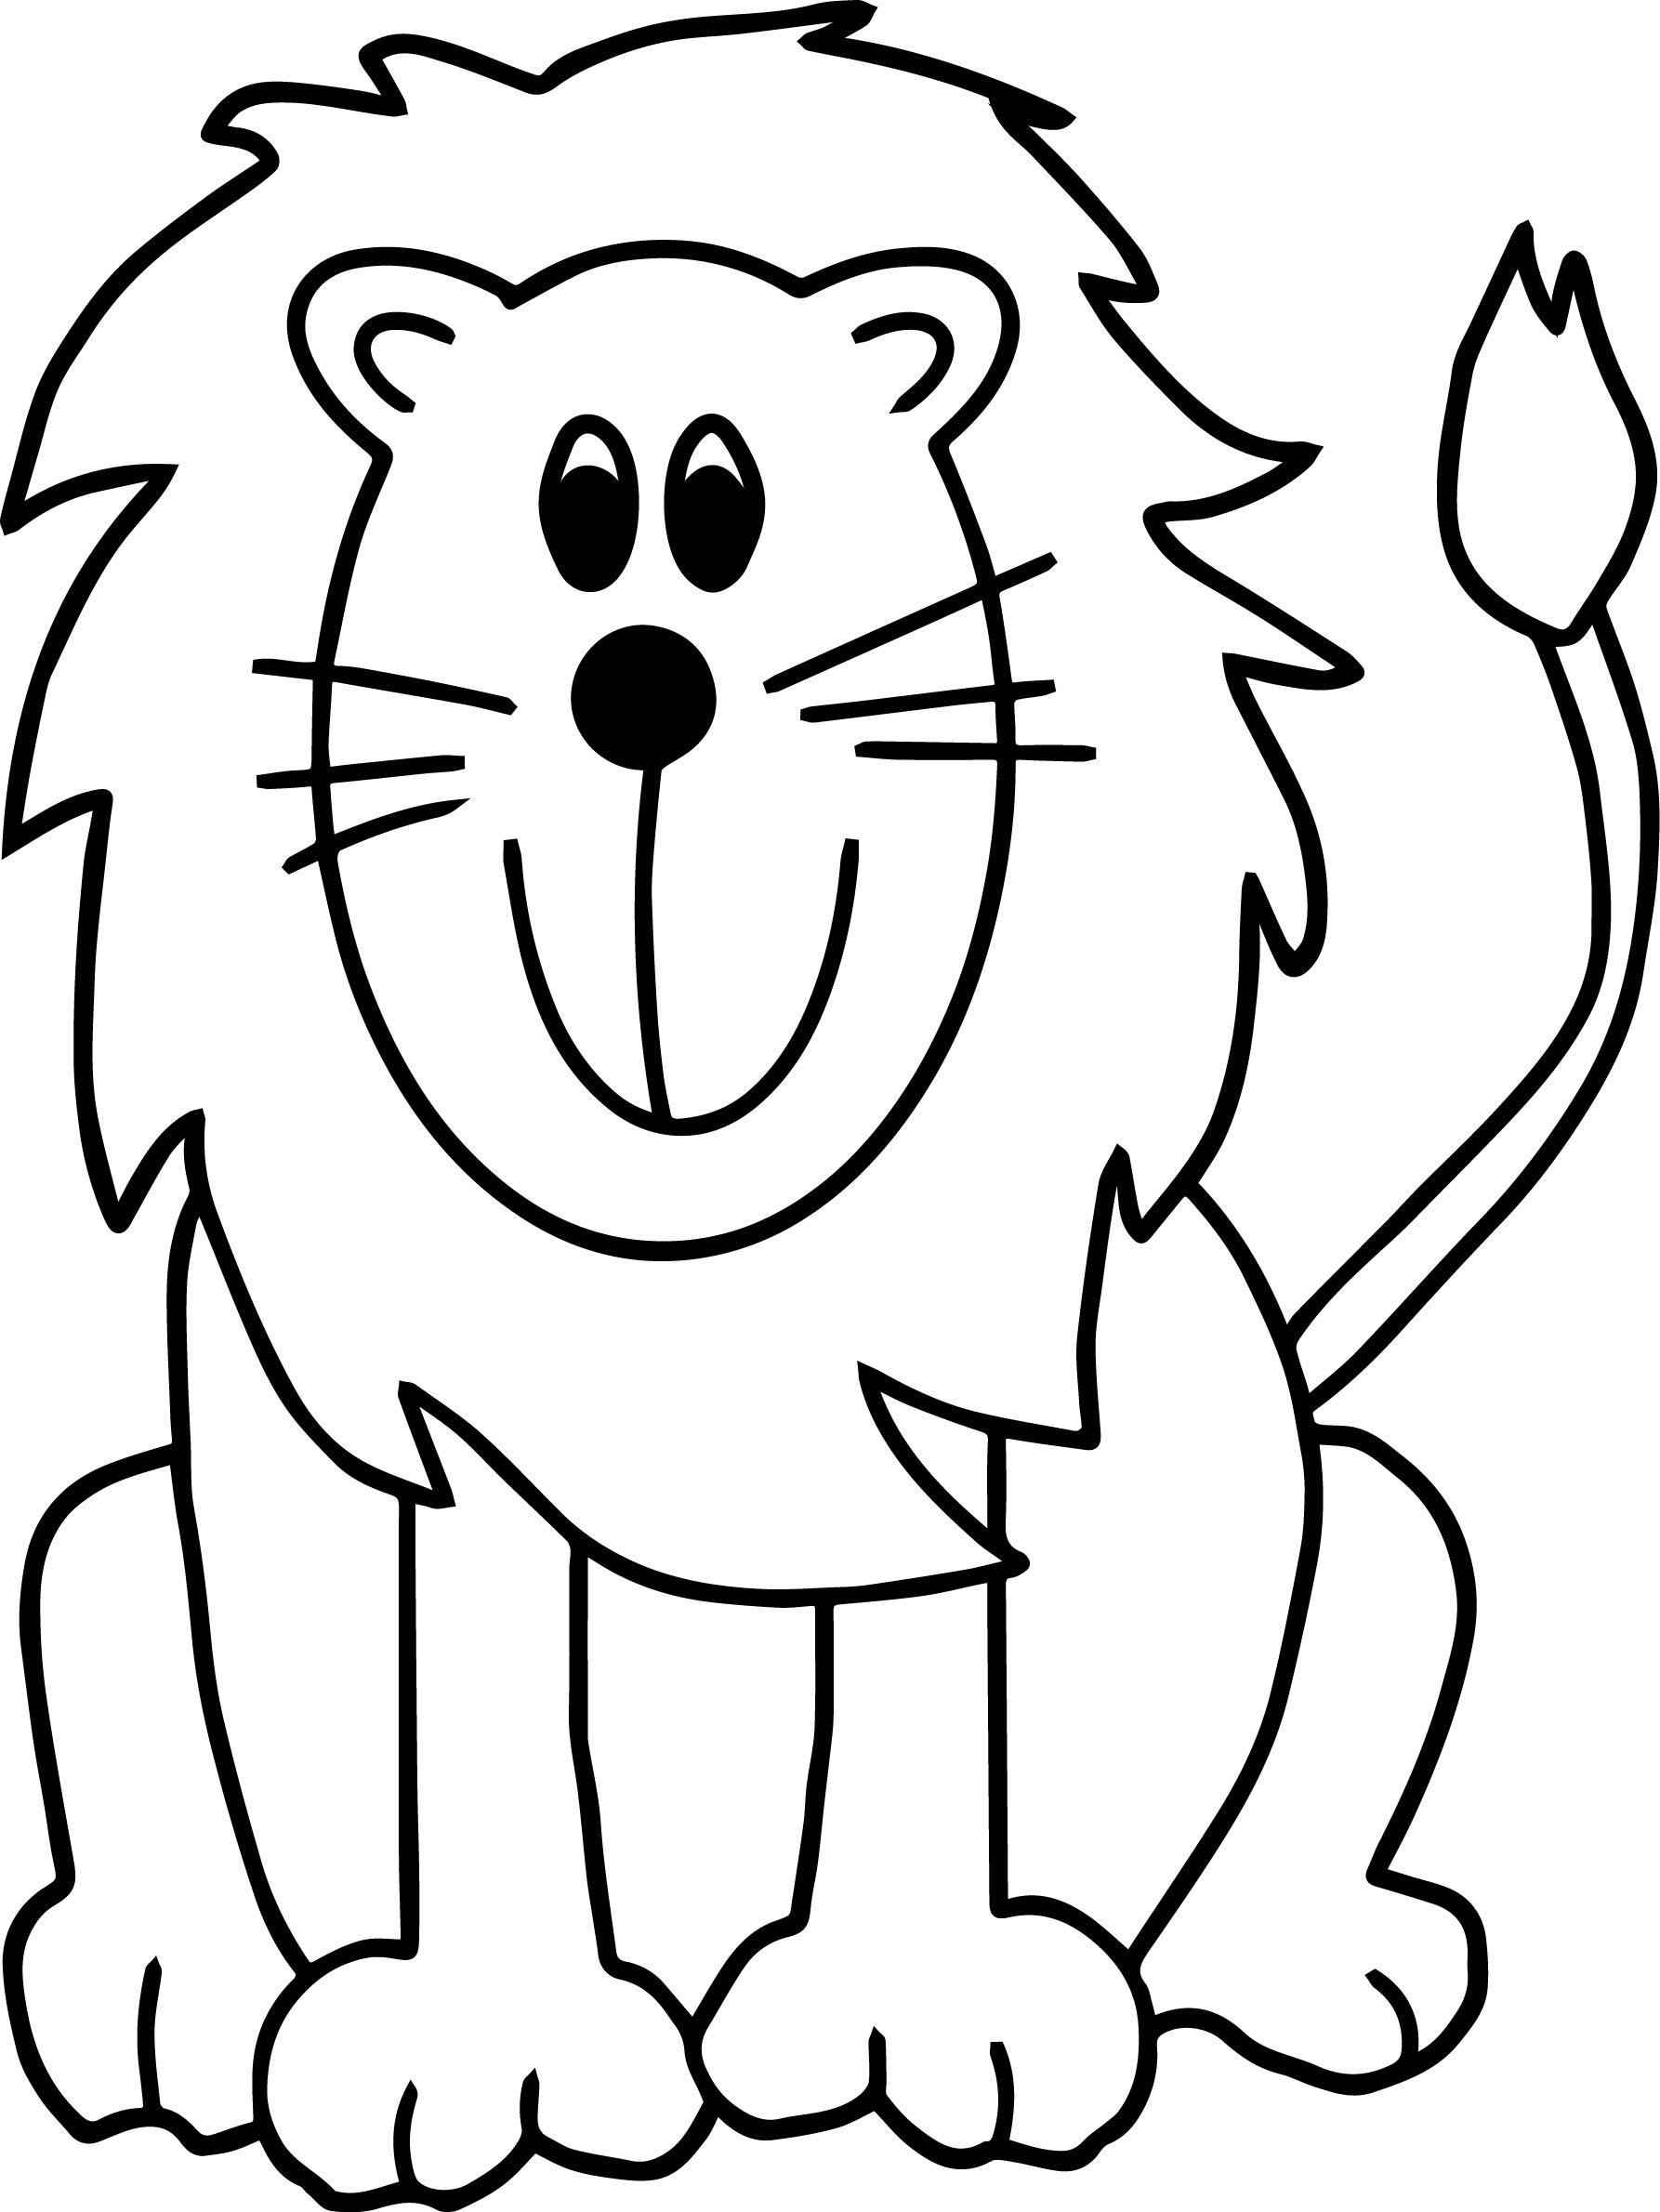 1786x2380 Zoo Coloring Pages Cute Zoo Animals Coloring Pages